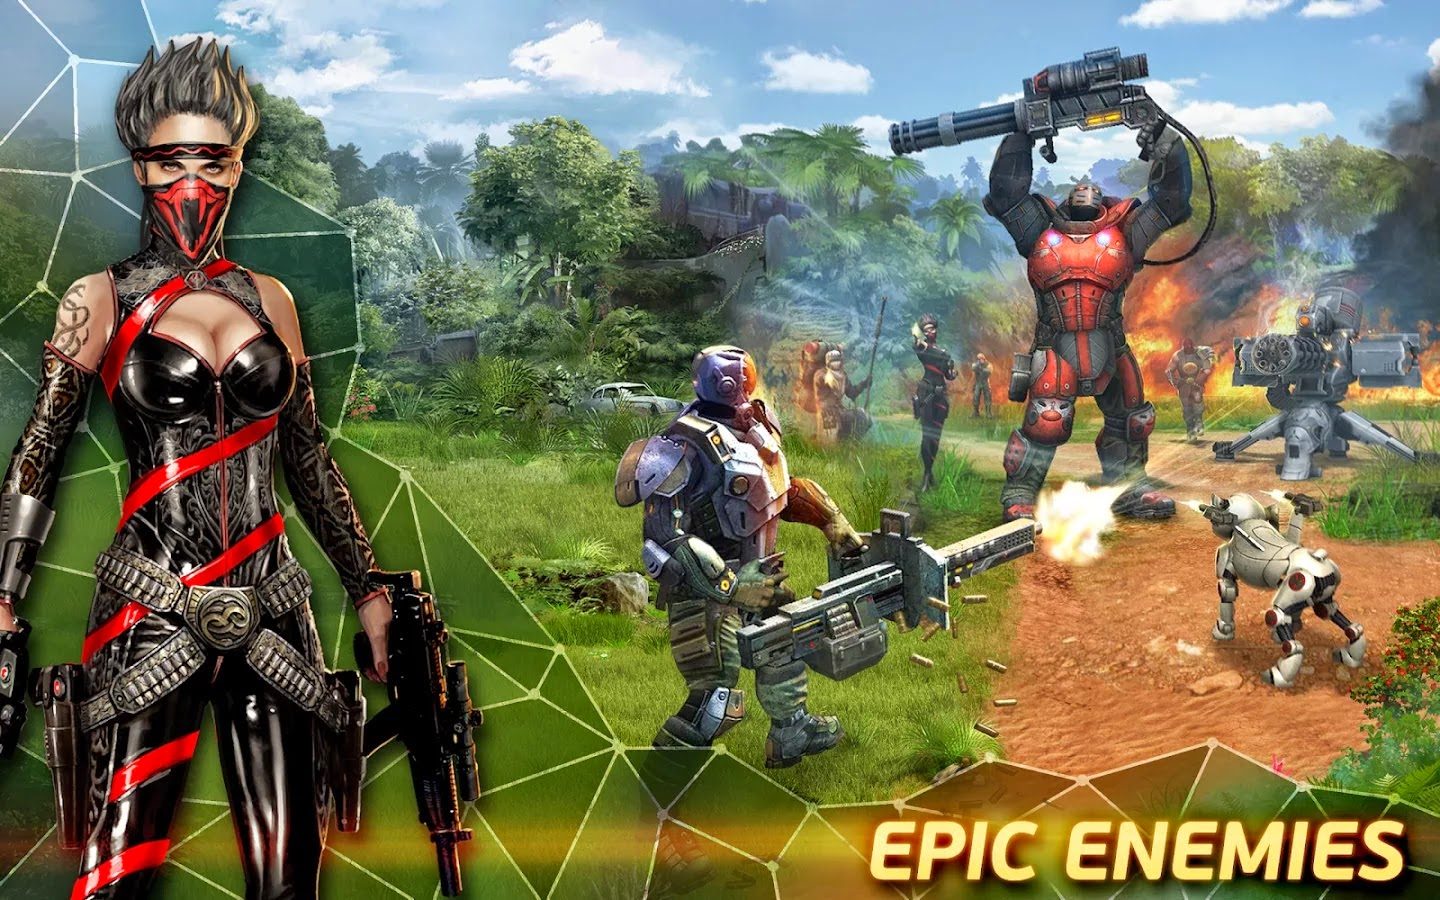 Evolution: Battle for Utopia v1.4.2 Mod [Unlimited Energy/Gems]